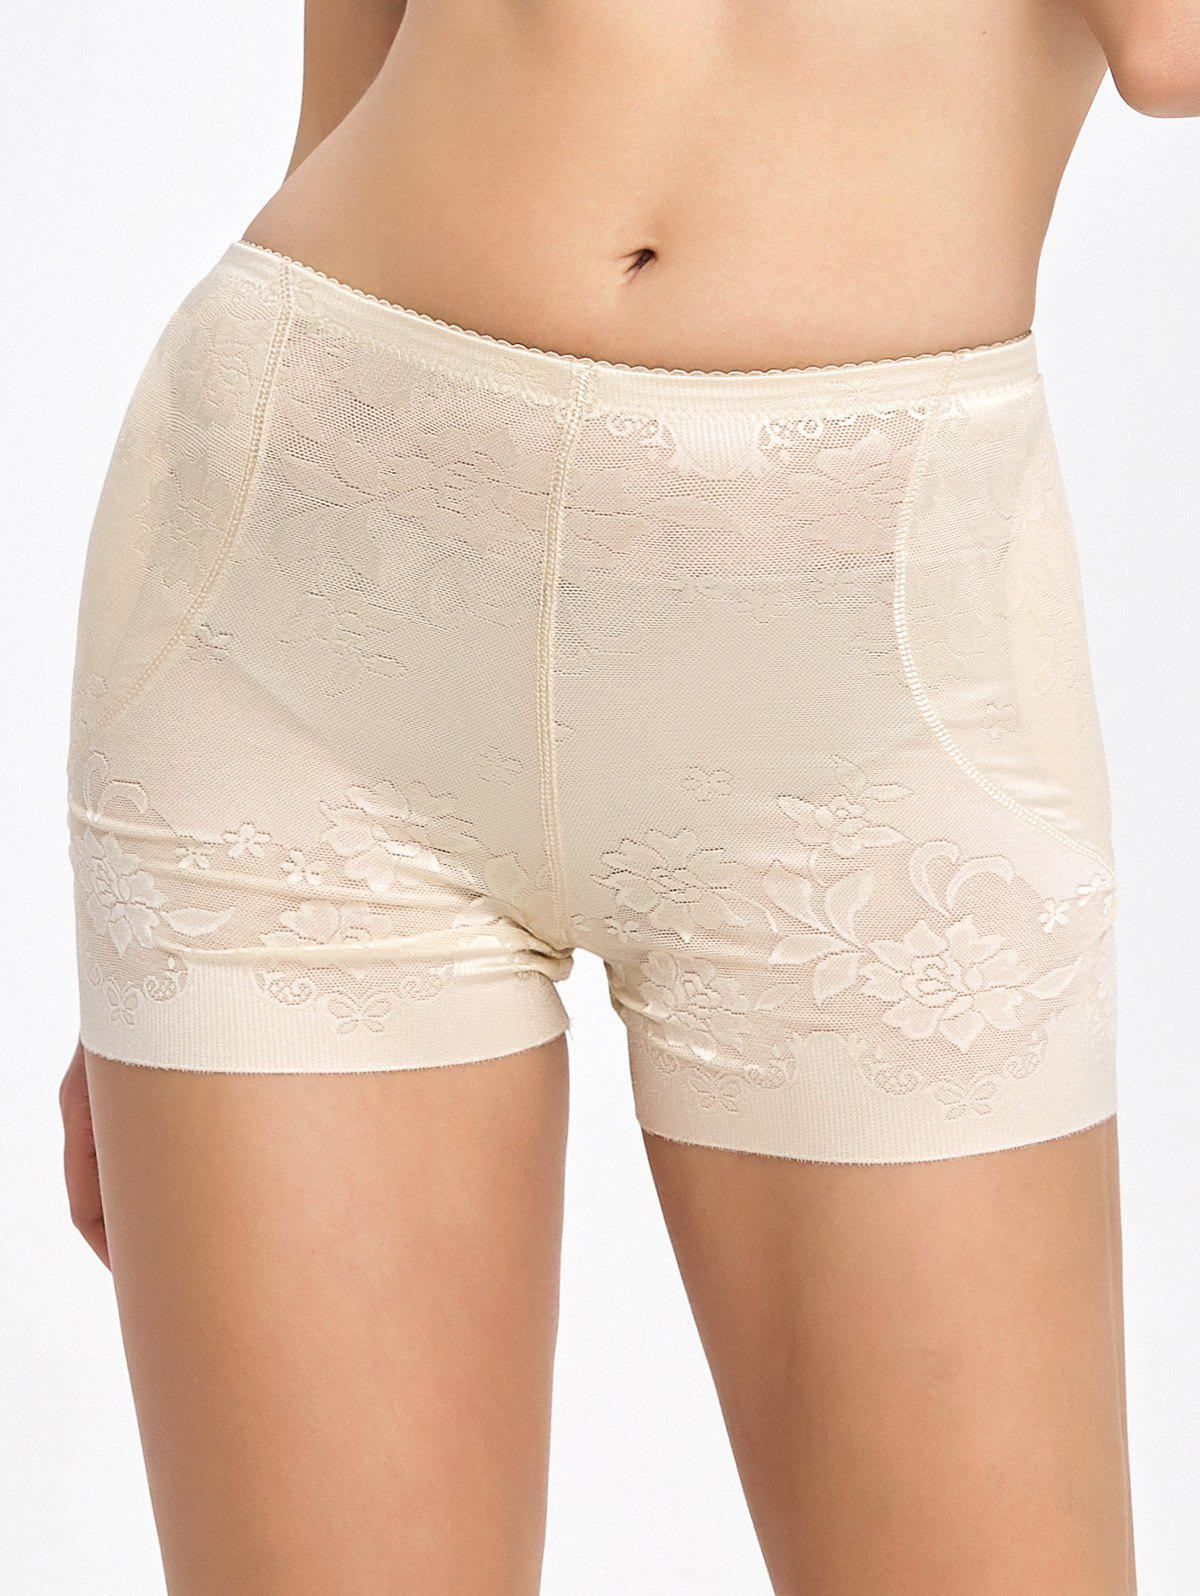 Floral Padded Panties Boyshorts - COMPLEXION 2XL